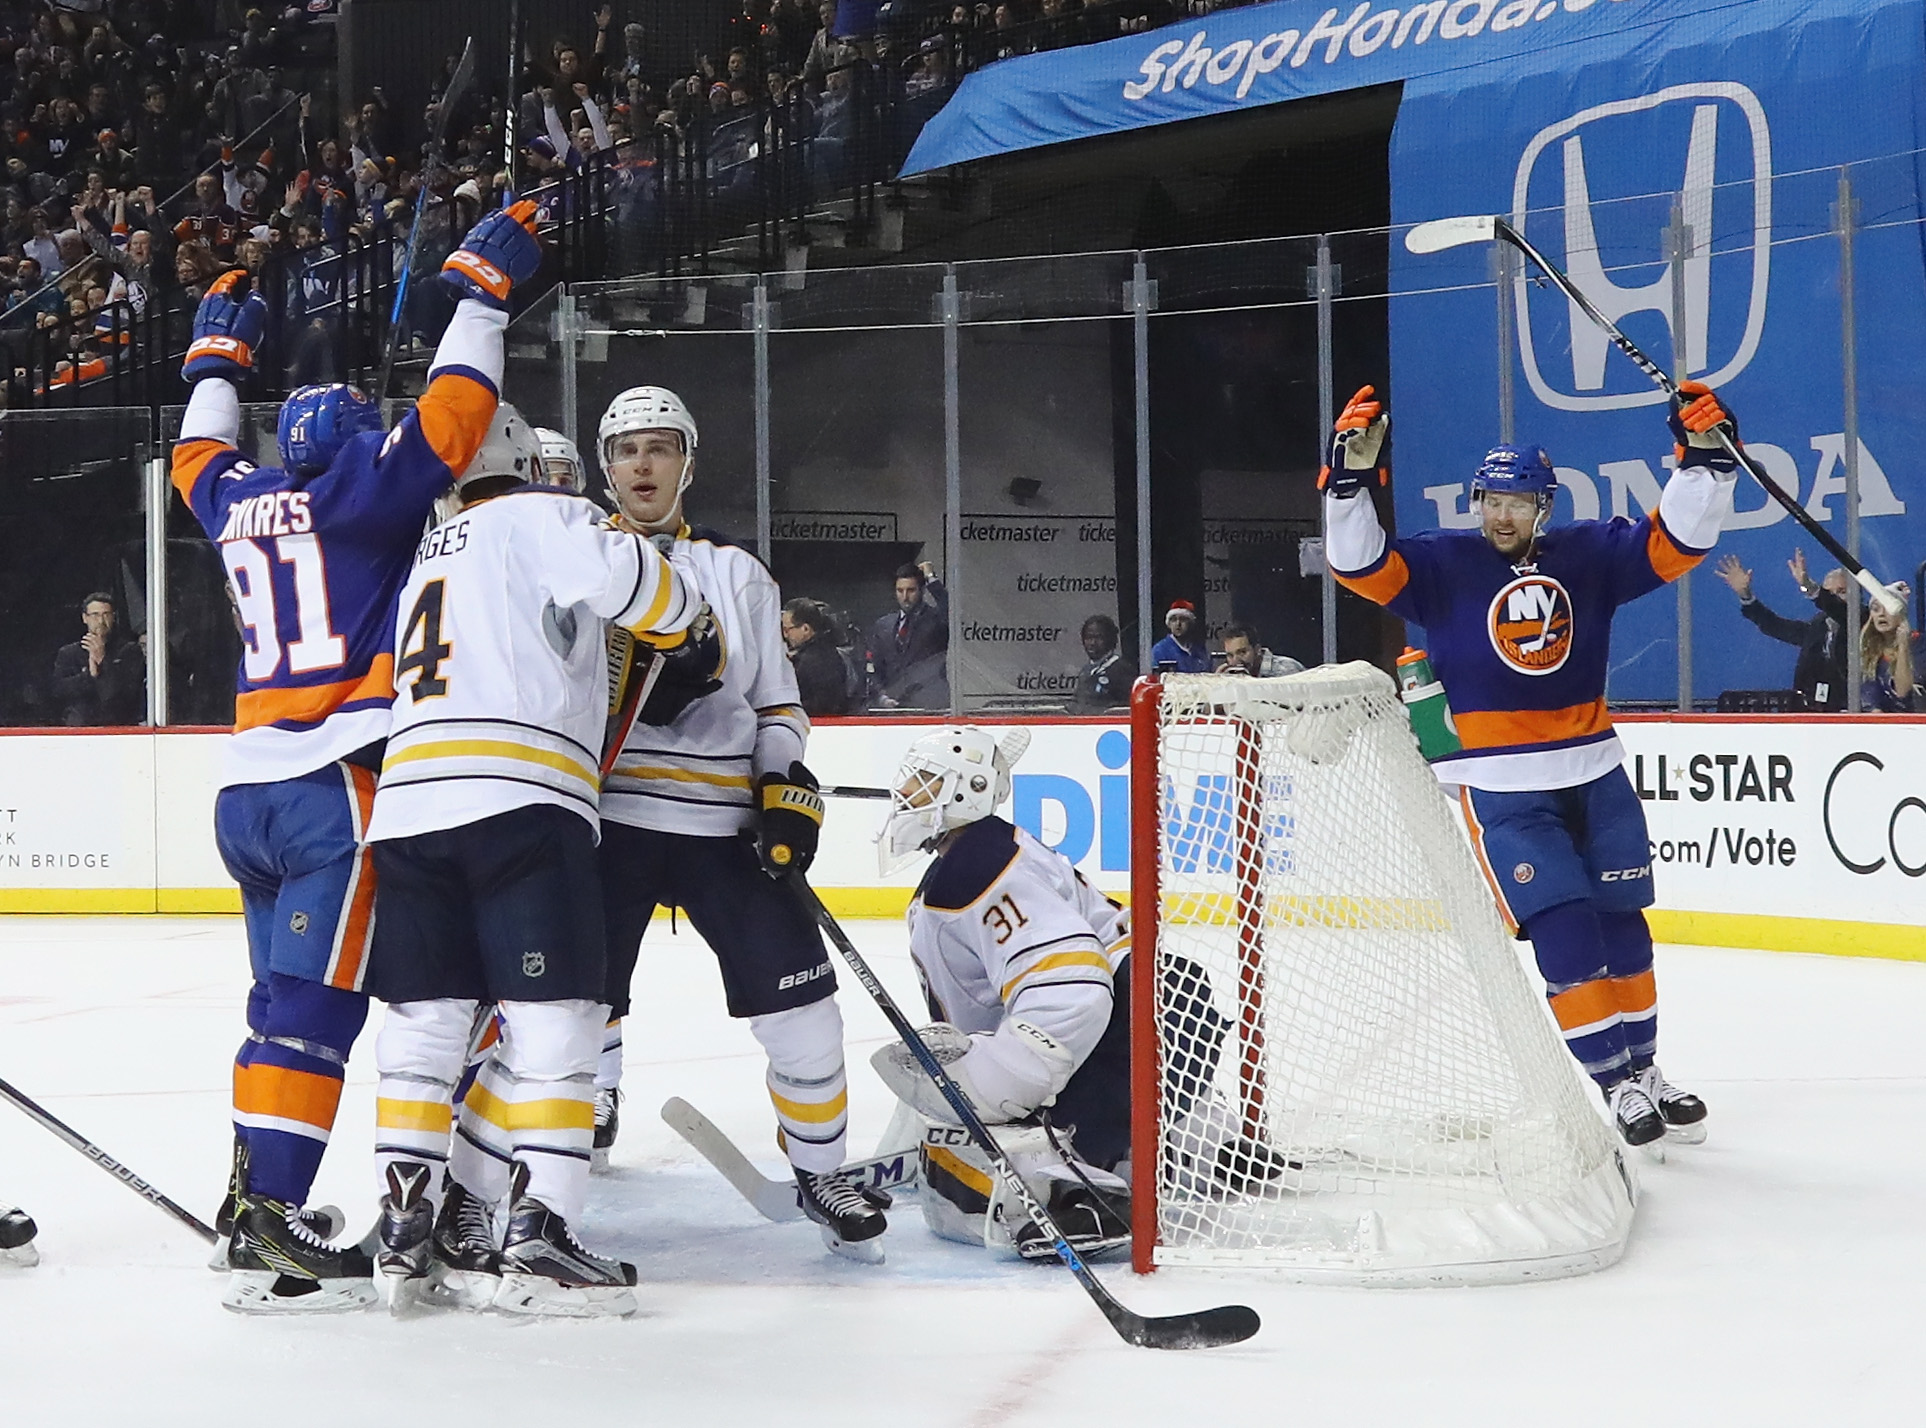 The Islanders' John Tavares (91) and Josh Bailey celebrated three New York goals during the first two periods. Josh Gorges (4), Rasmus Ristolainen and goalie Anders Nilsson had none. (Getty Images)